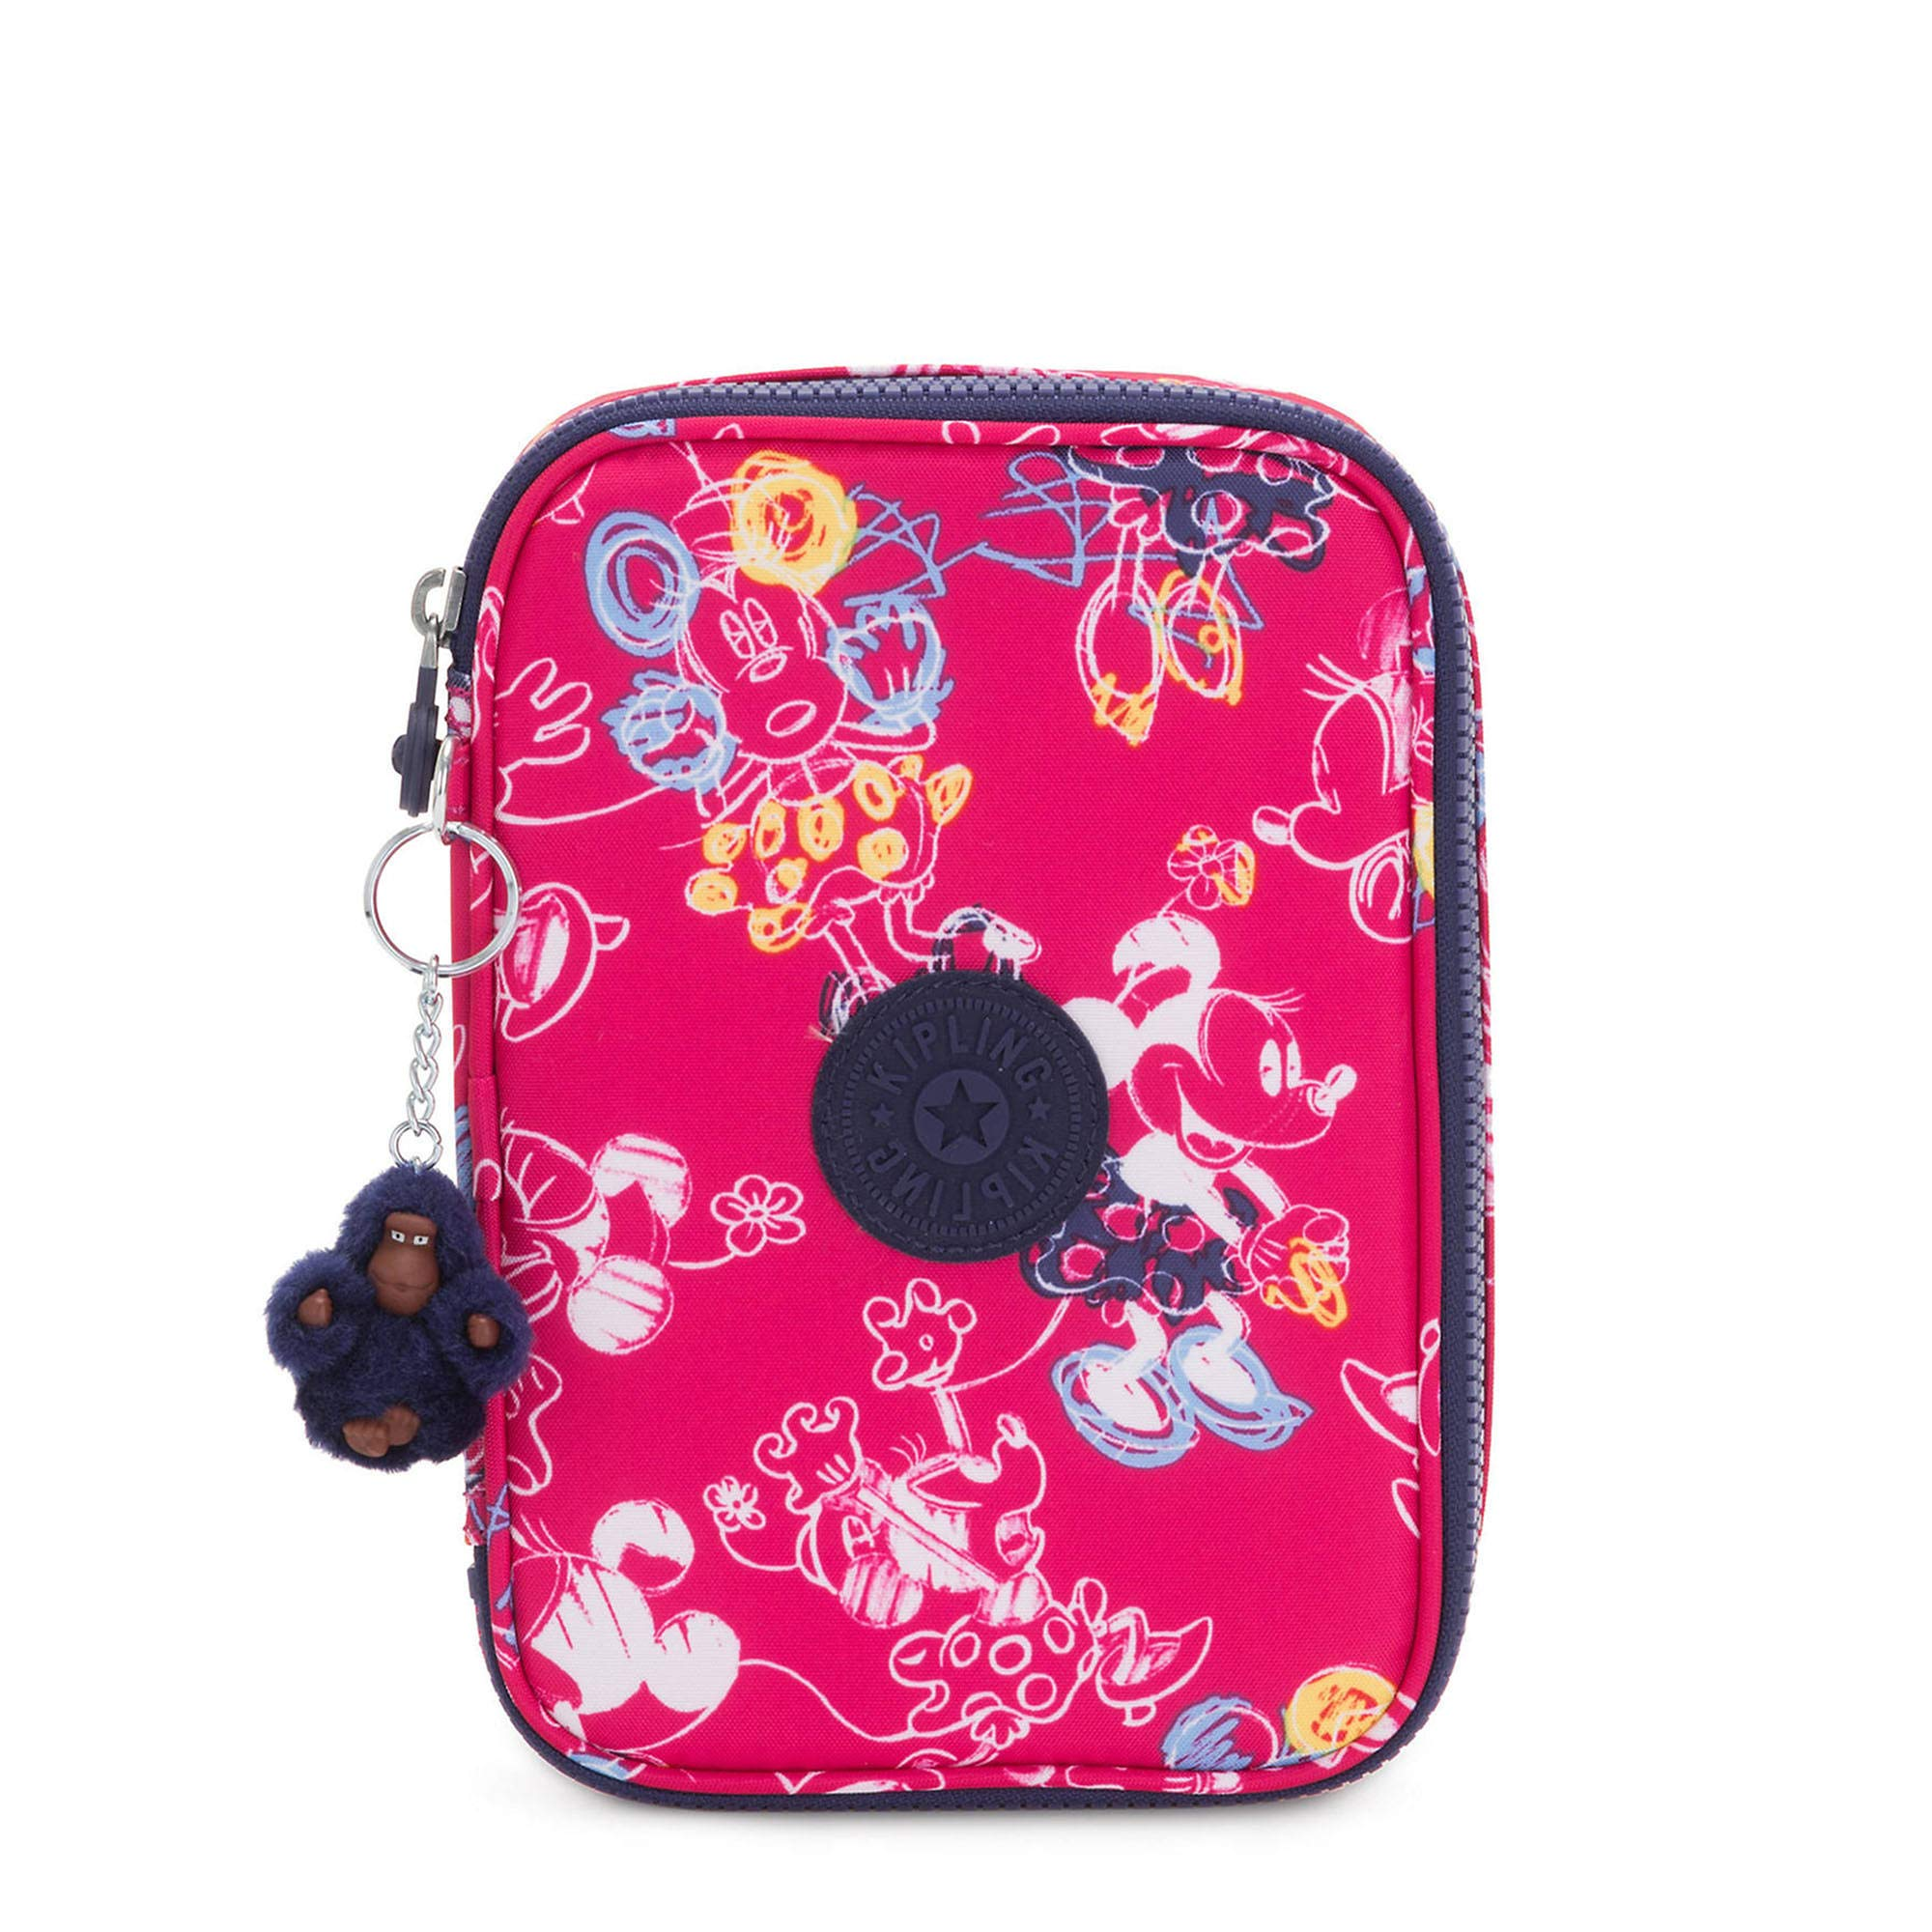 Kipling Disney's Minnie Mouse And Mickey Mouse 100 Pens Printed Case Doodle Pink by Kipling